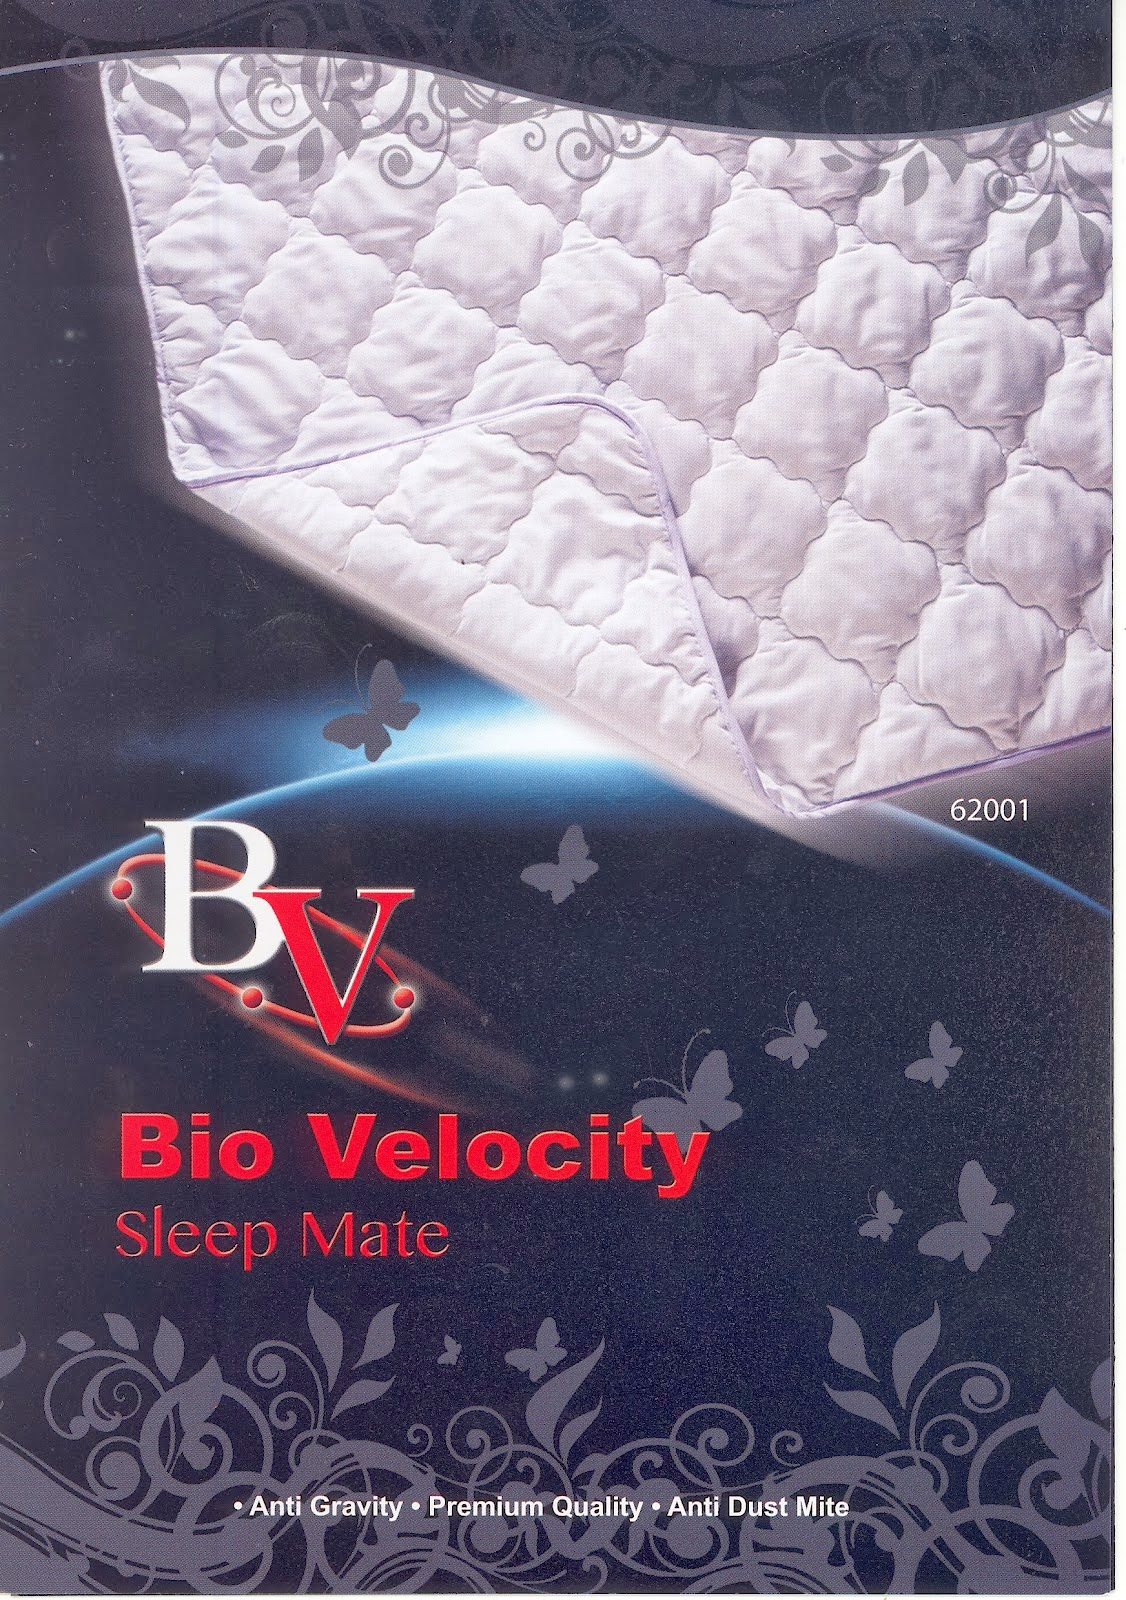 Bio Velocity Sleep Mate (BVSM)